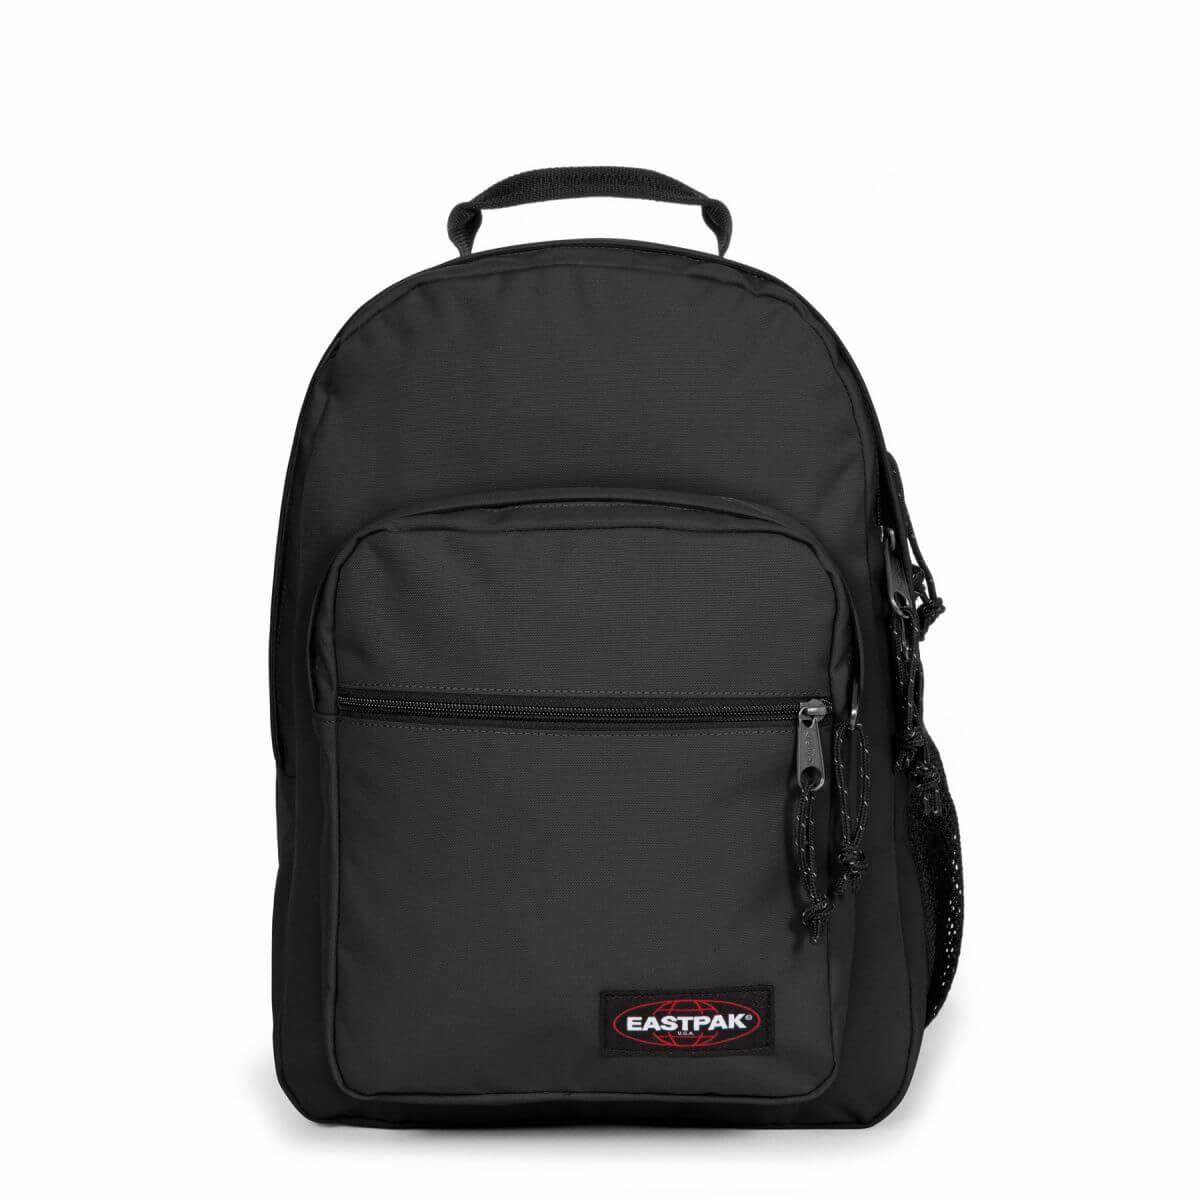 Eastpak Morius Black